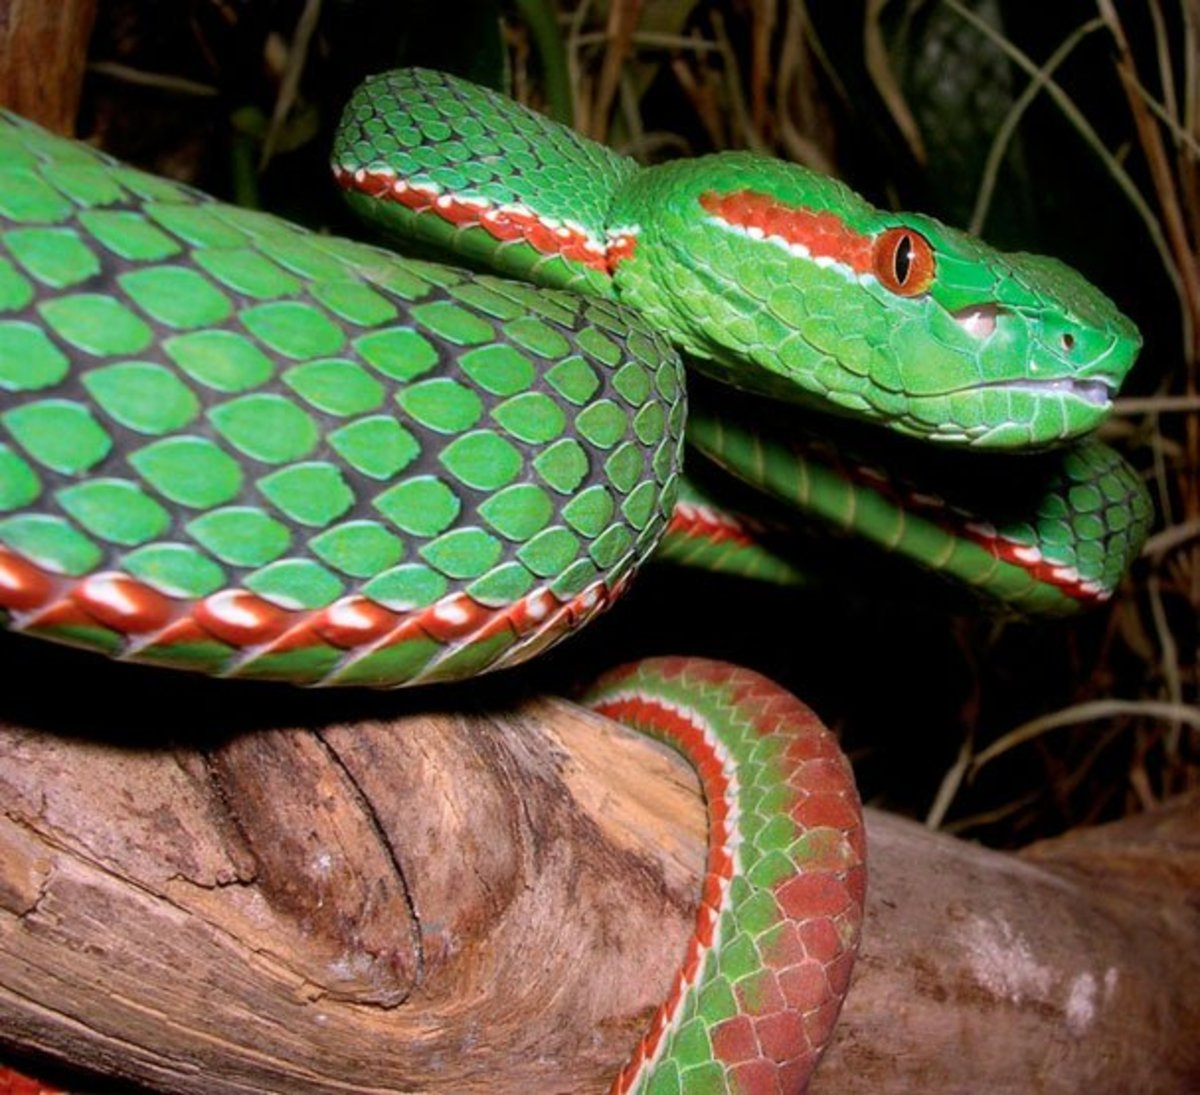 13 Most Beautiful Snakes In The World Owlcation